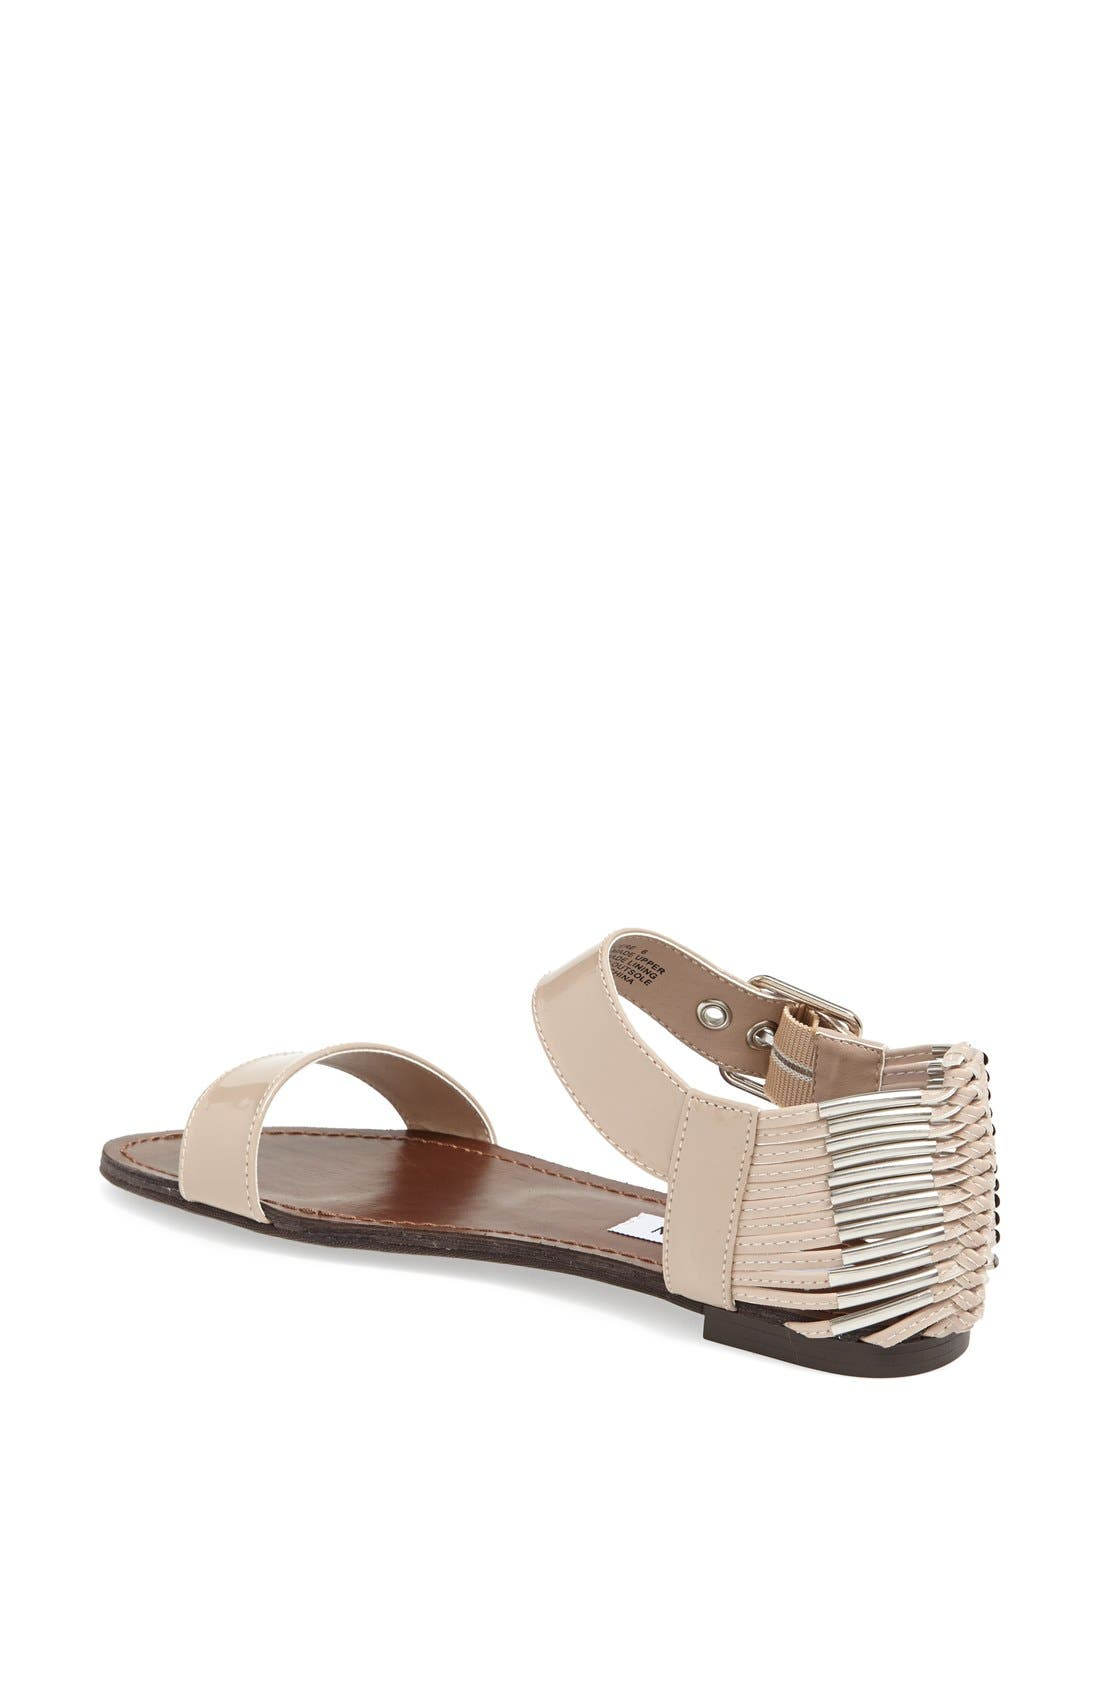 Alternate Image 2  - Steve Madden 'Sincere' Sandal